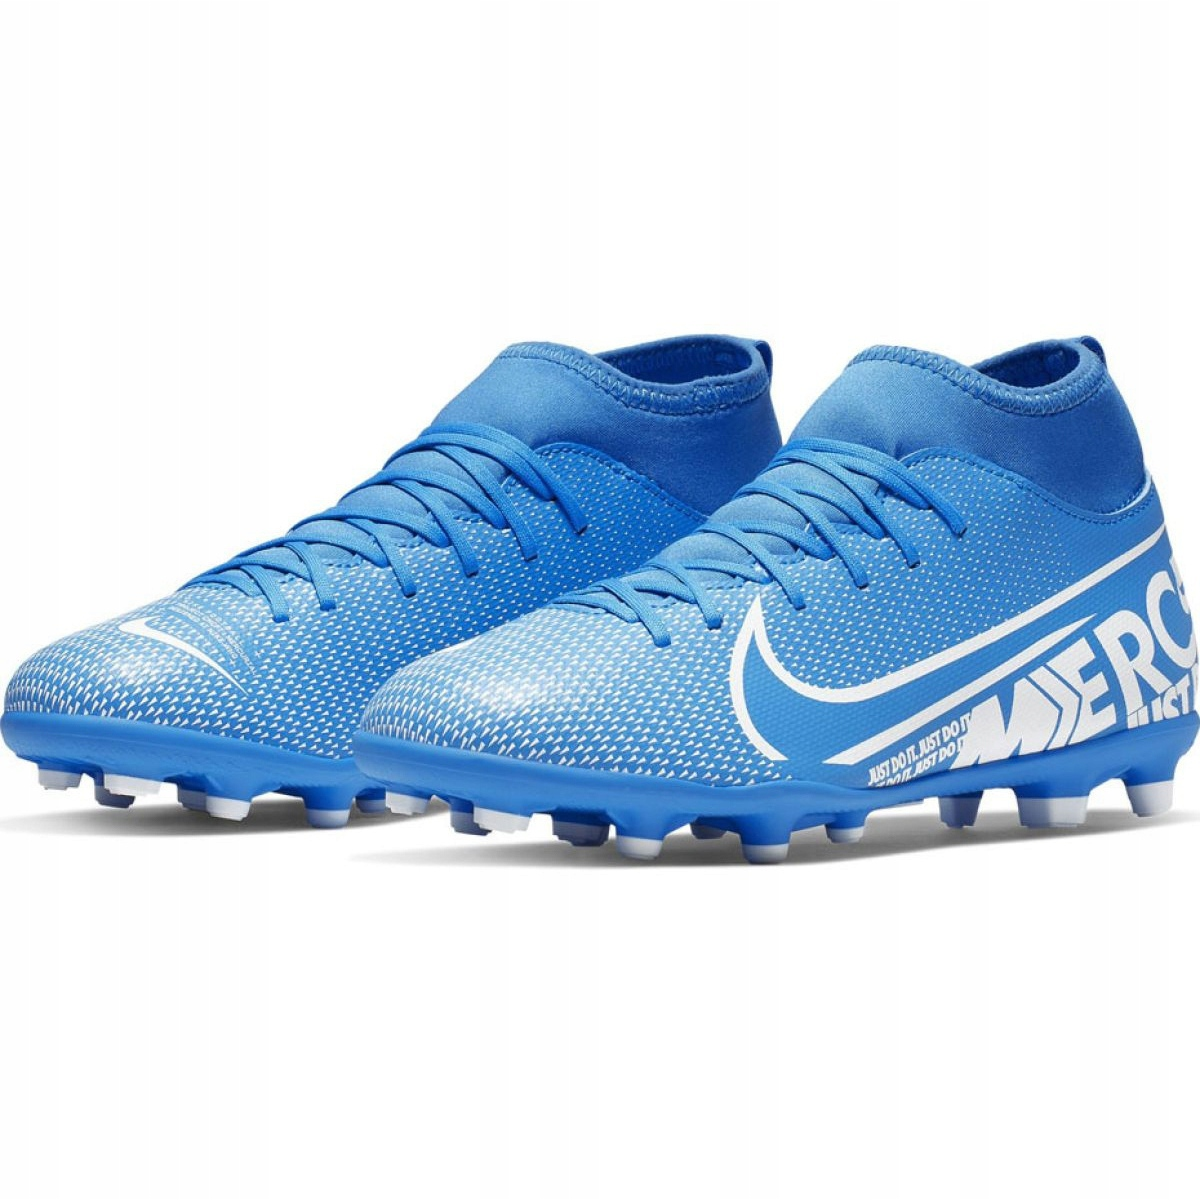 Details About Football Boots Nike Mercurial Superfly 7 Club Fg Mg Jr At8150 414 Show Original Title